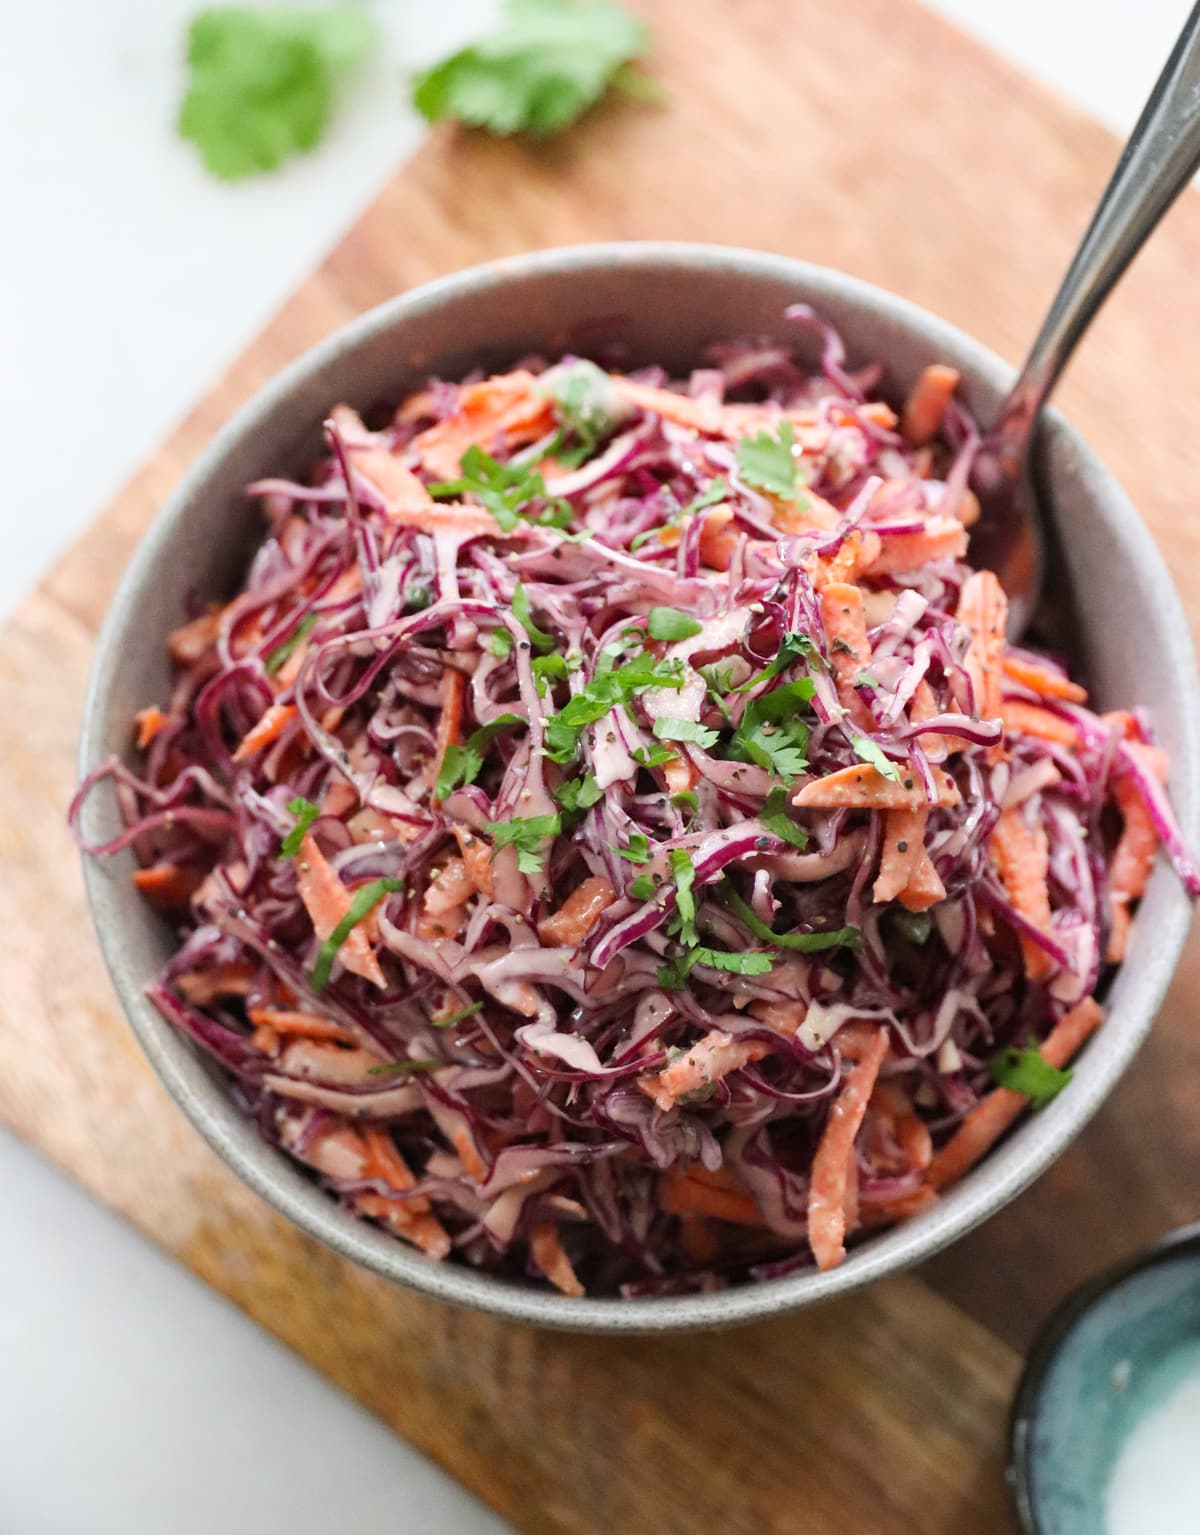 The finished cabbage and carrot cole slaw plated in a gray bowl, garnished with minced cilantro.